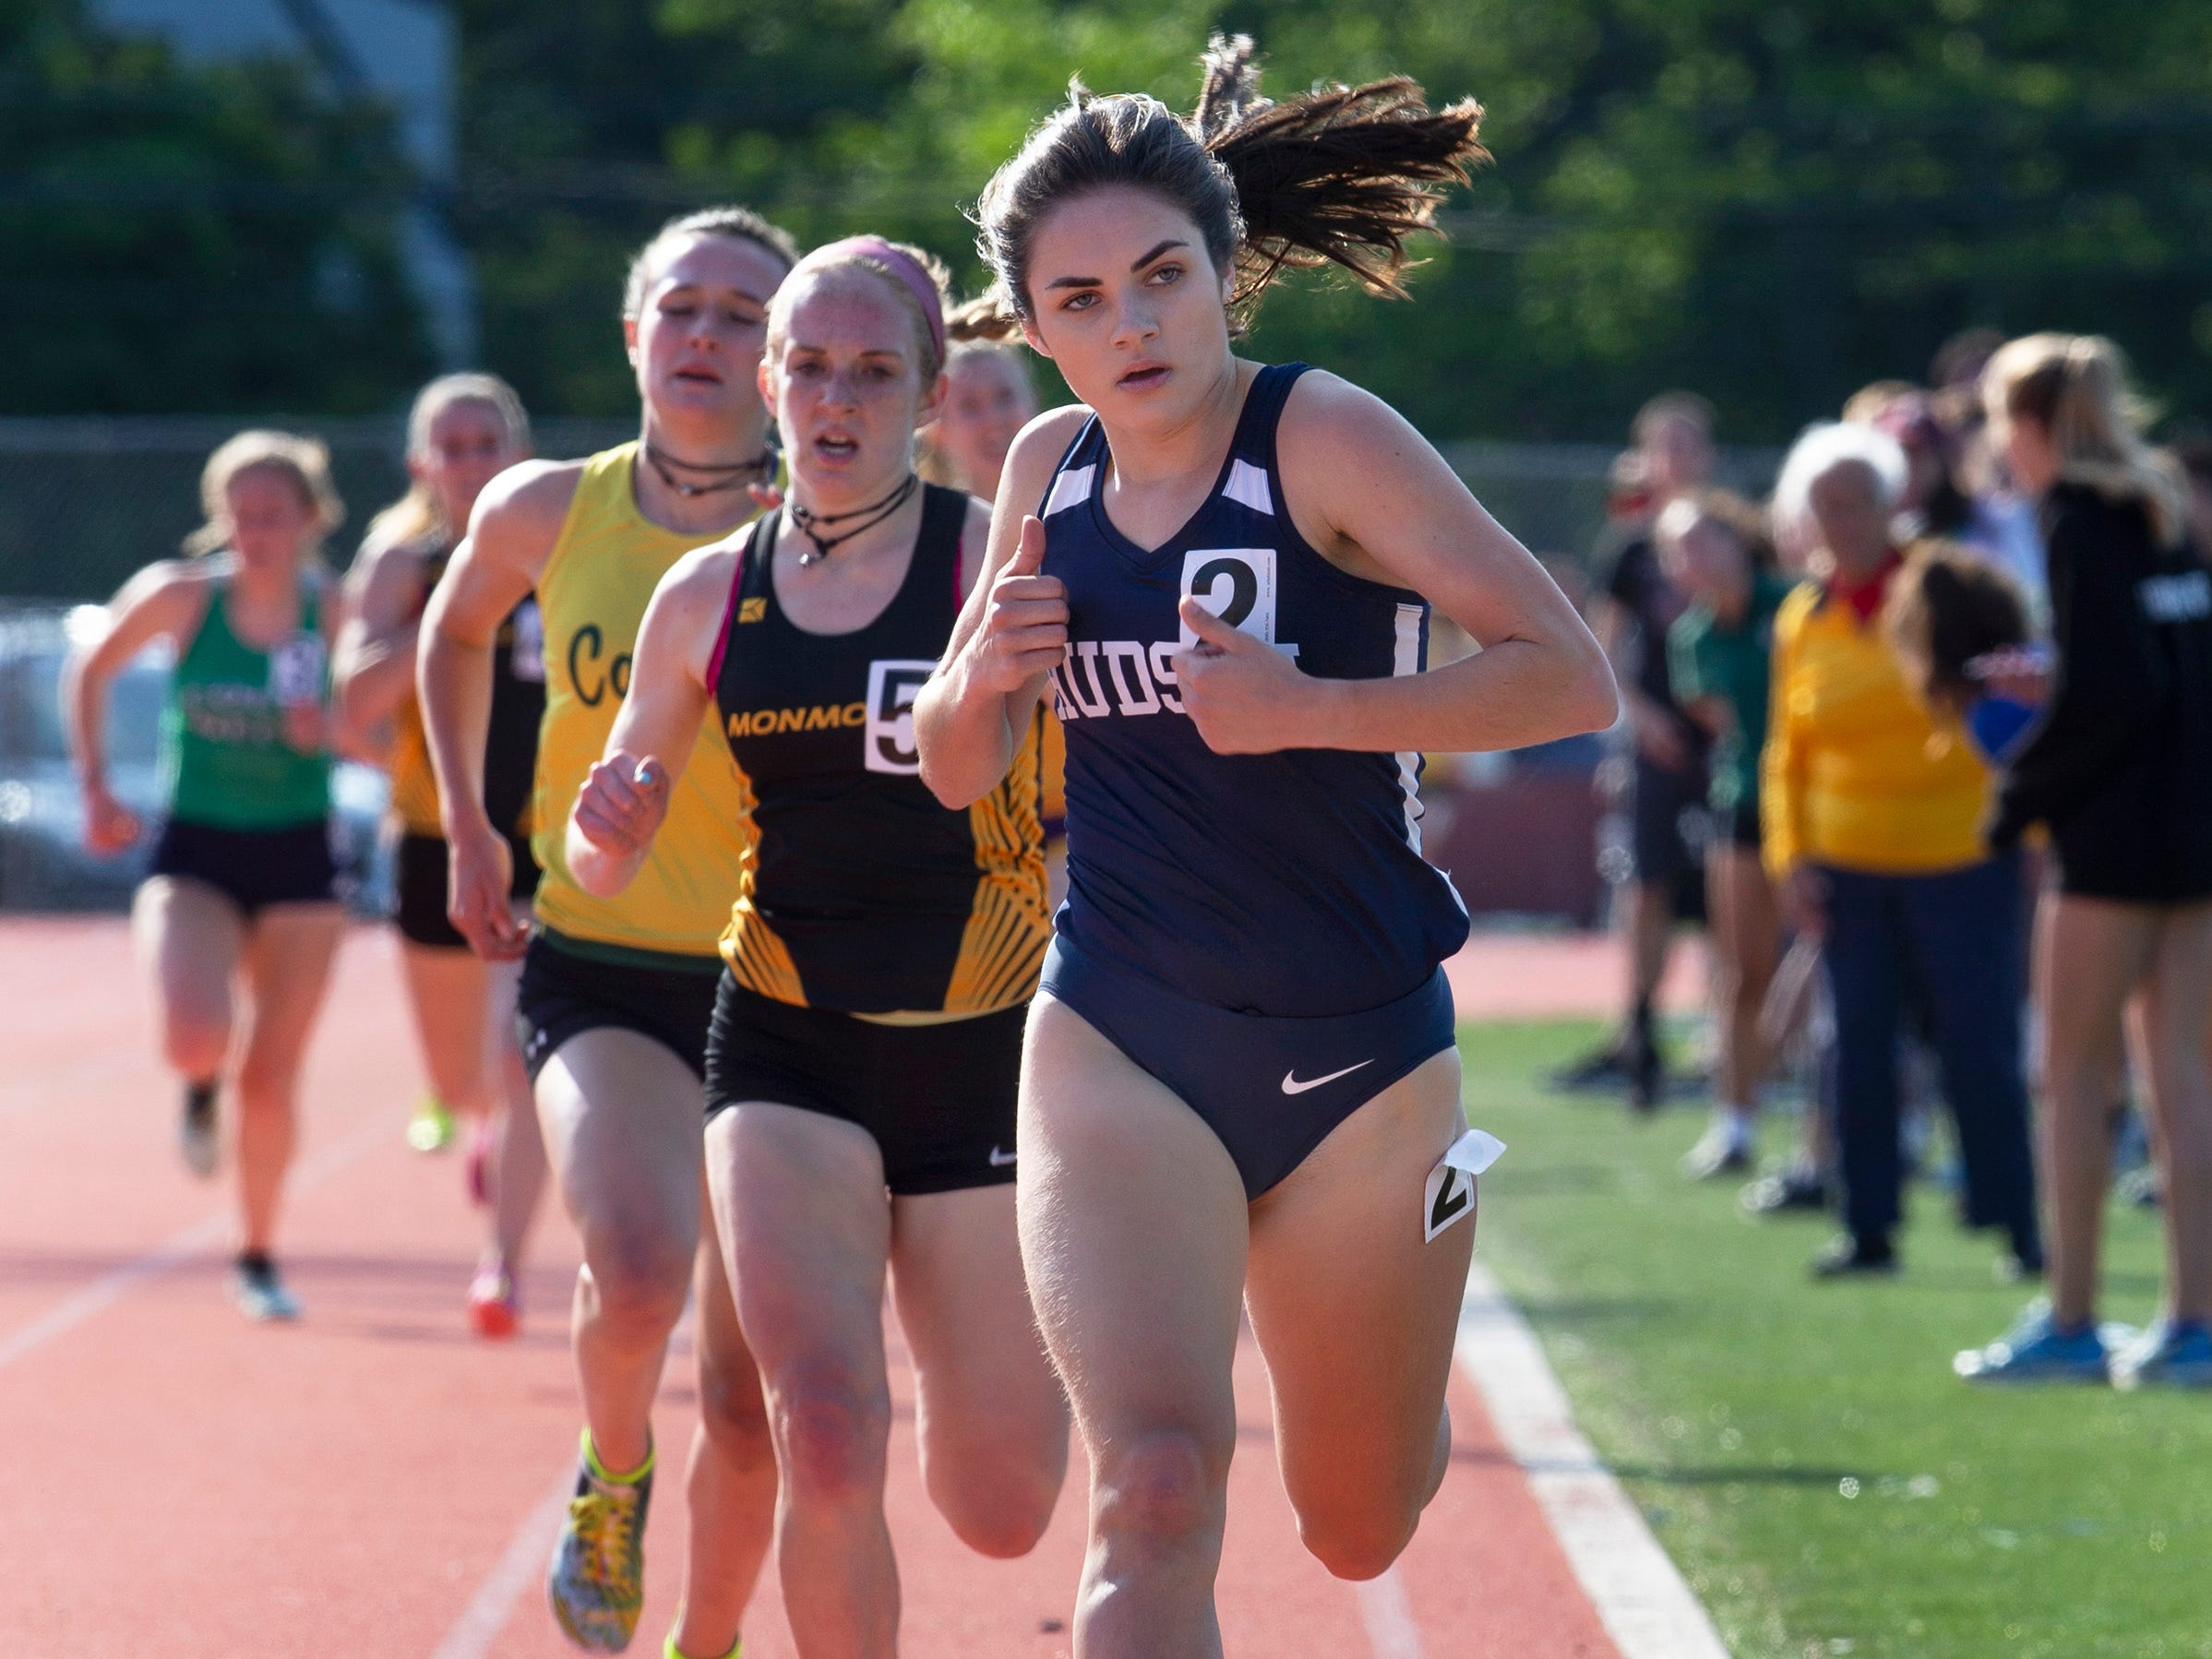 Henry Hudson's Corinna Vidal wins the fast heat of the Girls 1600 at  the Monmouth County Track Championship in Middletown on May 8, 2019